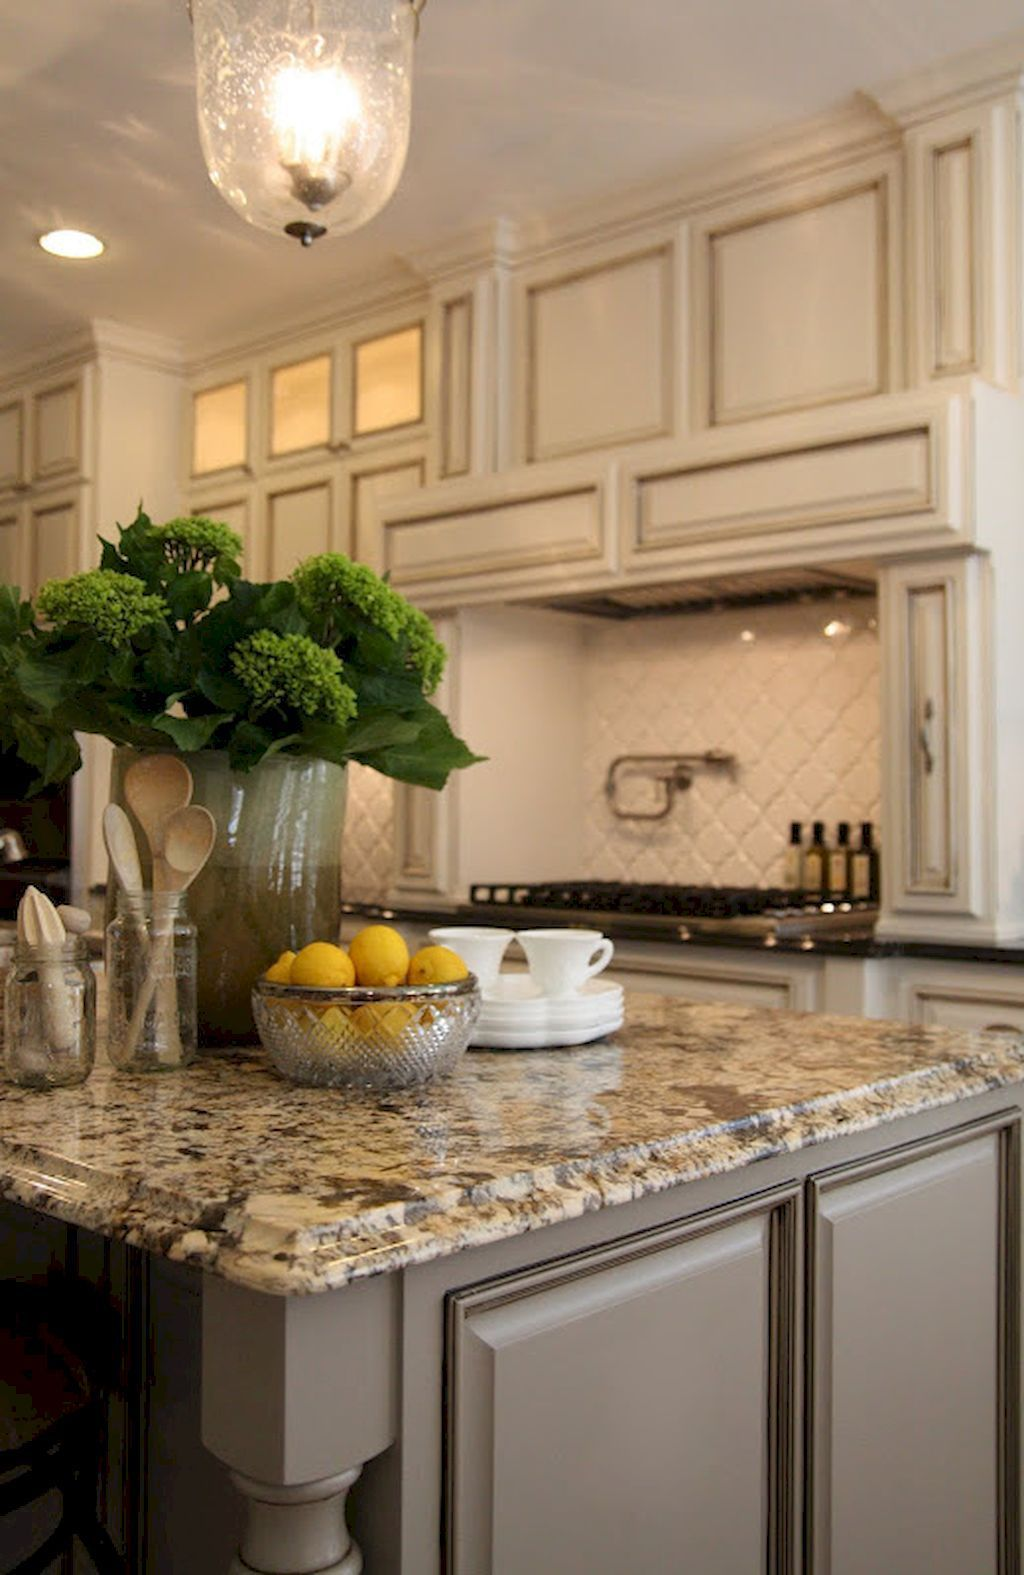 French Country Kitchen Design Decor Ideas 42 Roomodeling Ivory Kitchen Cabinets Ivory Kitchen Country Kitchen Designs